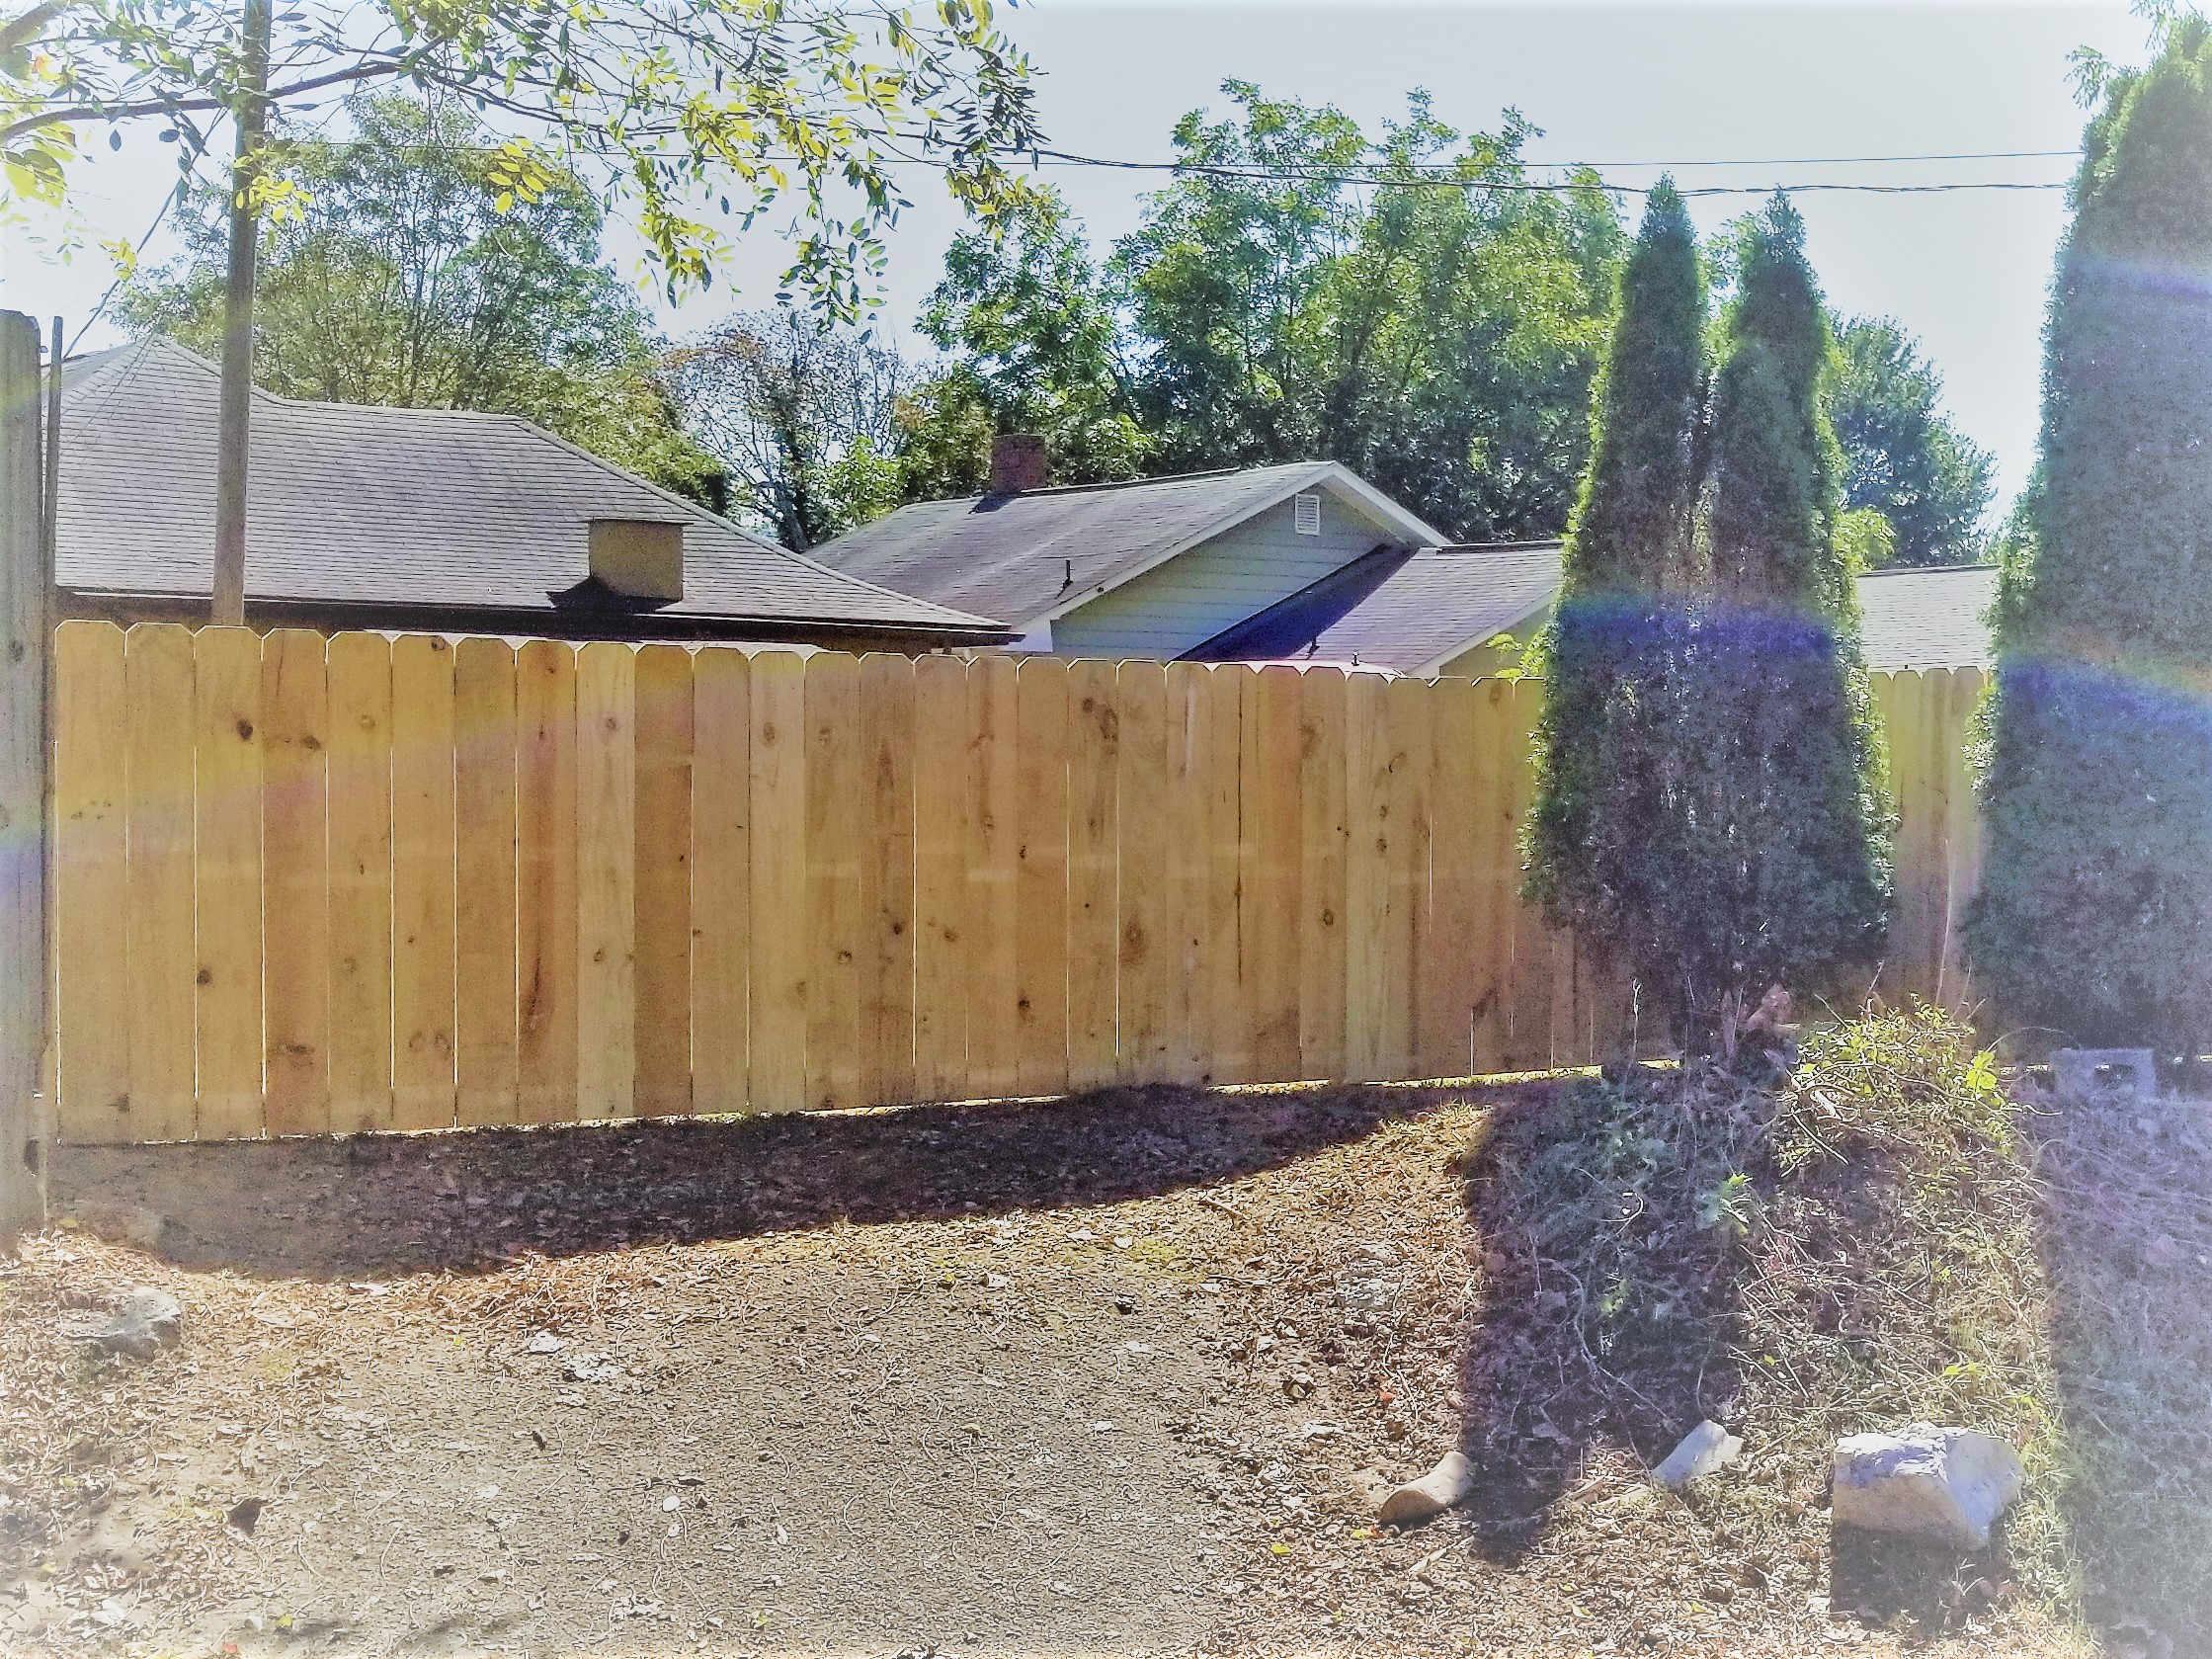 New Wood Fence 210 Feet (Johnson City, Tn)